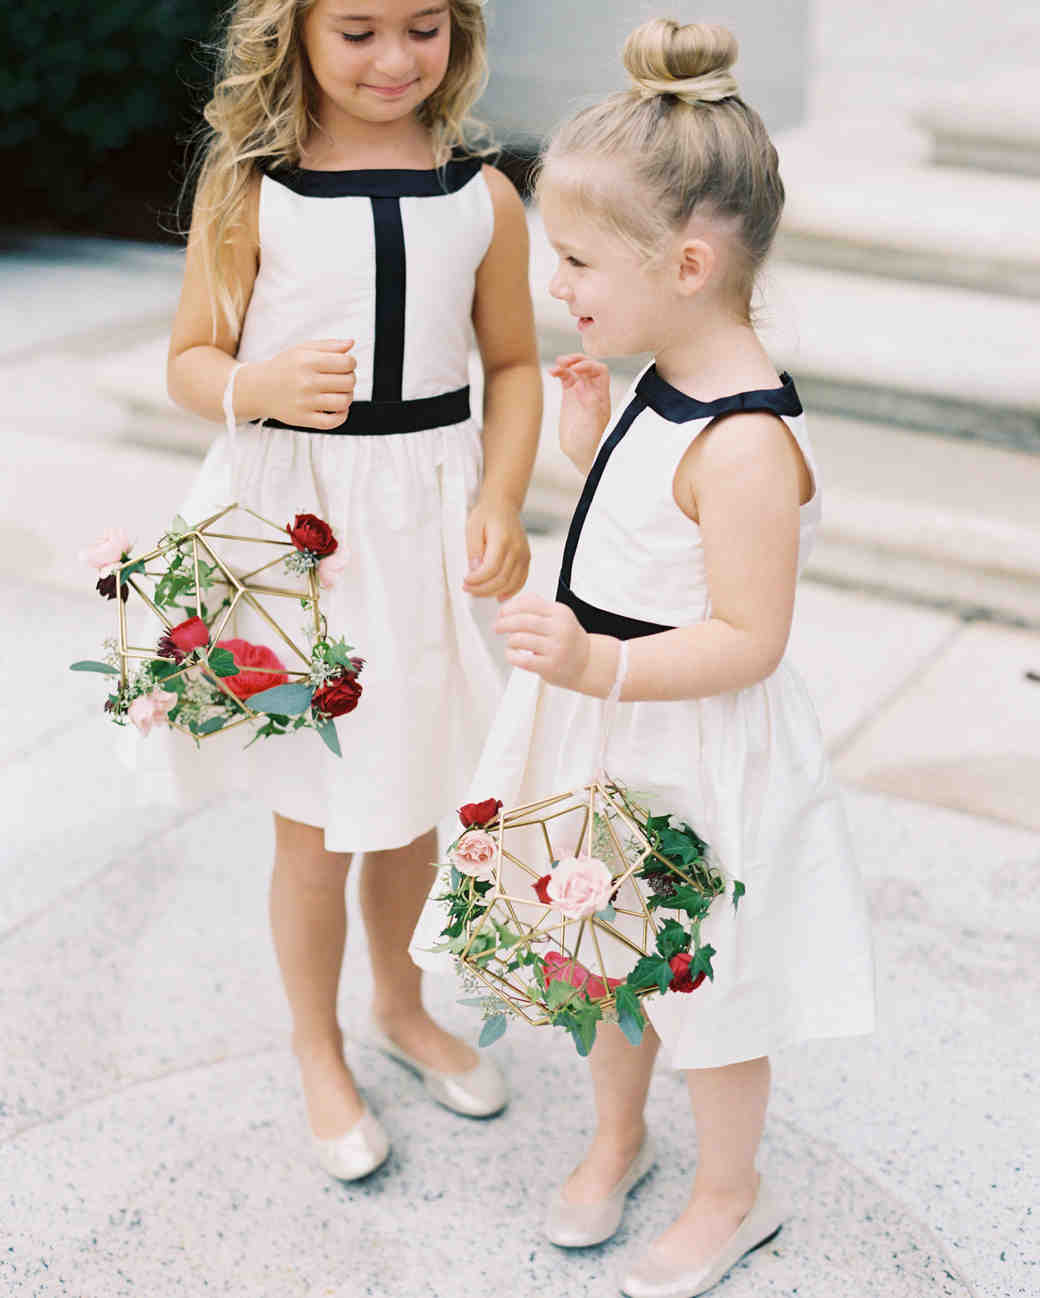 f5f1101db The Best Flower Girl Baskets from Real Weddings